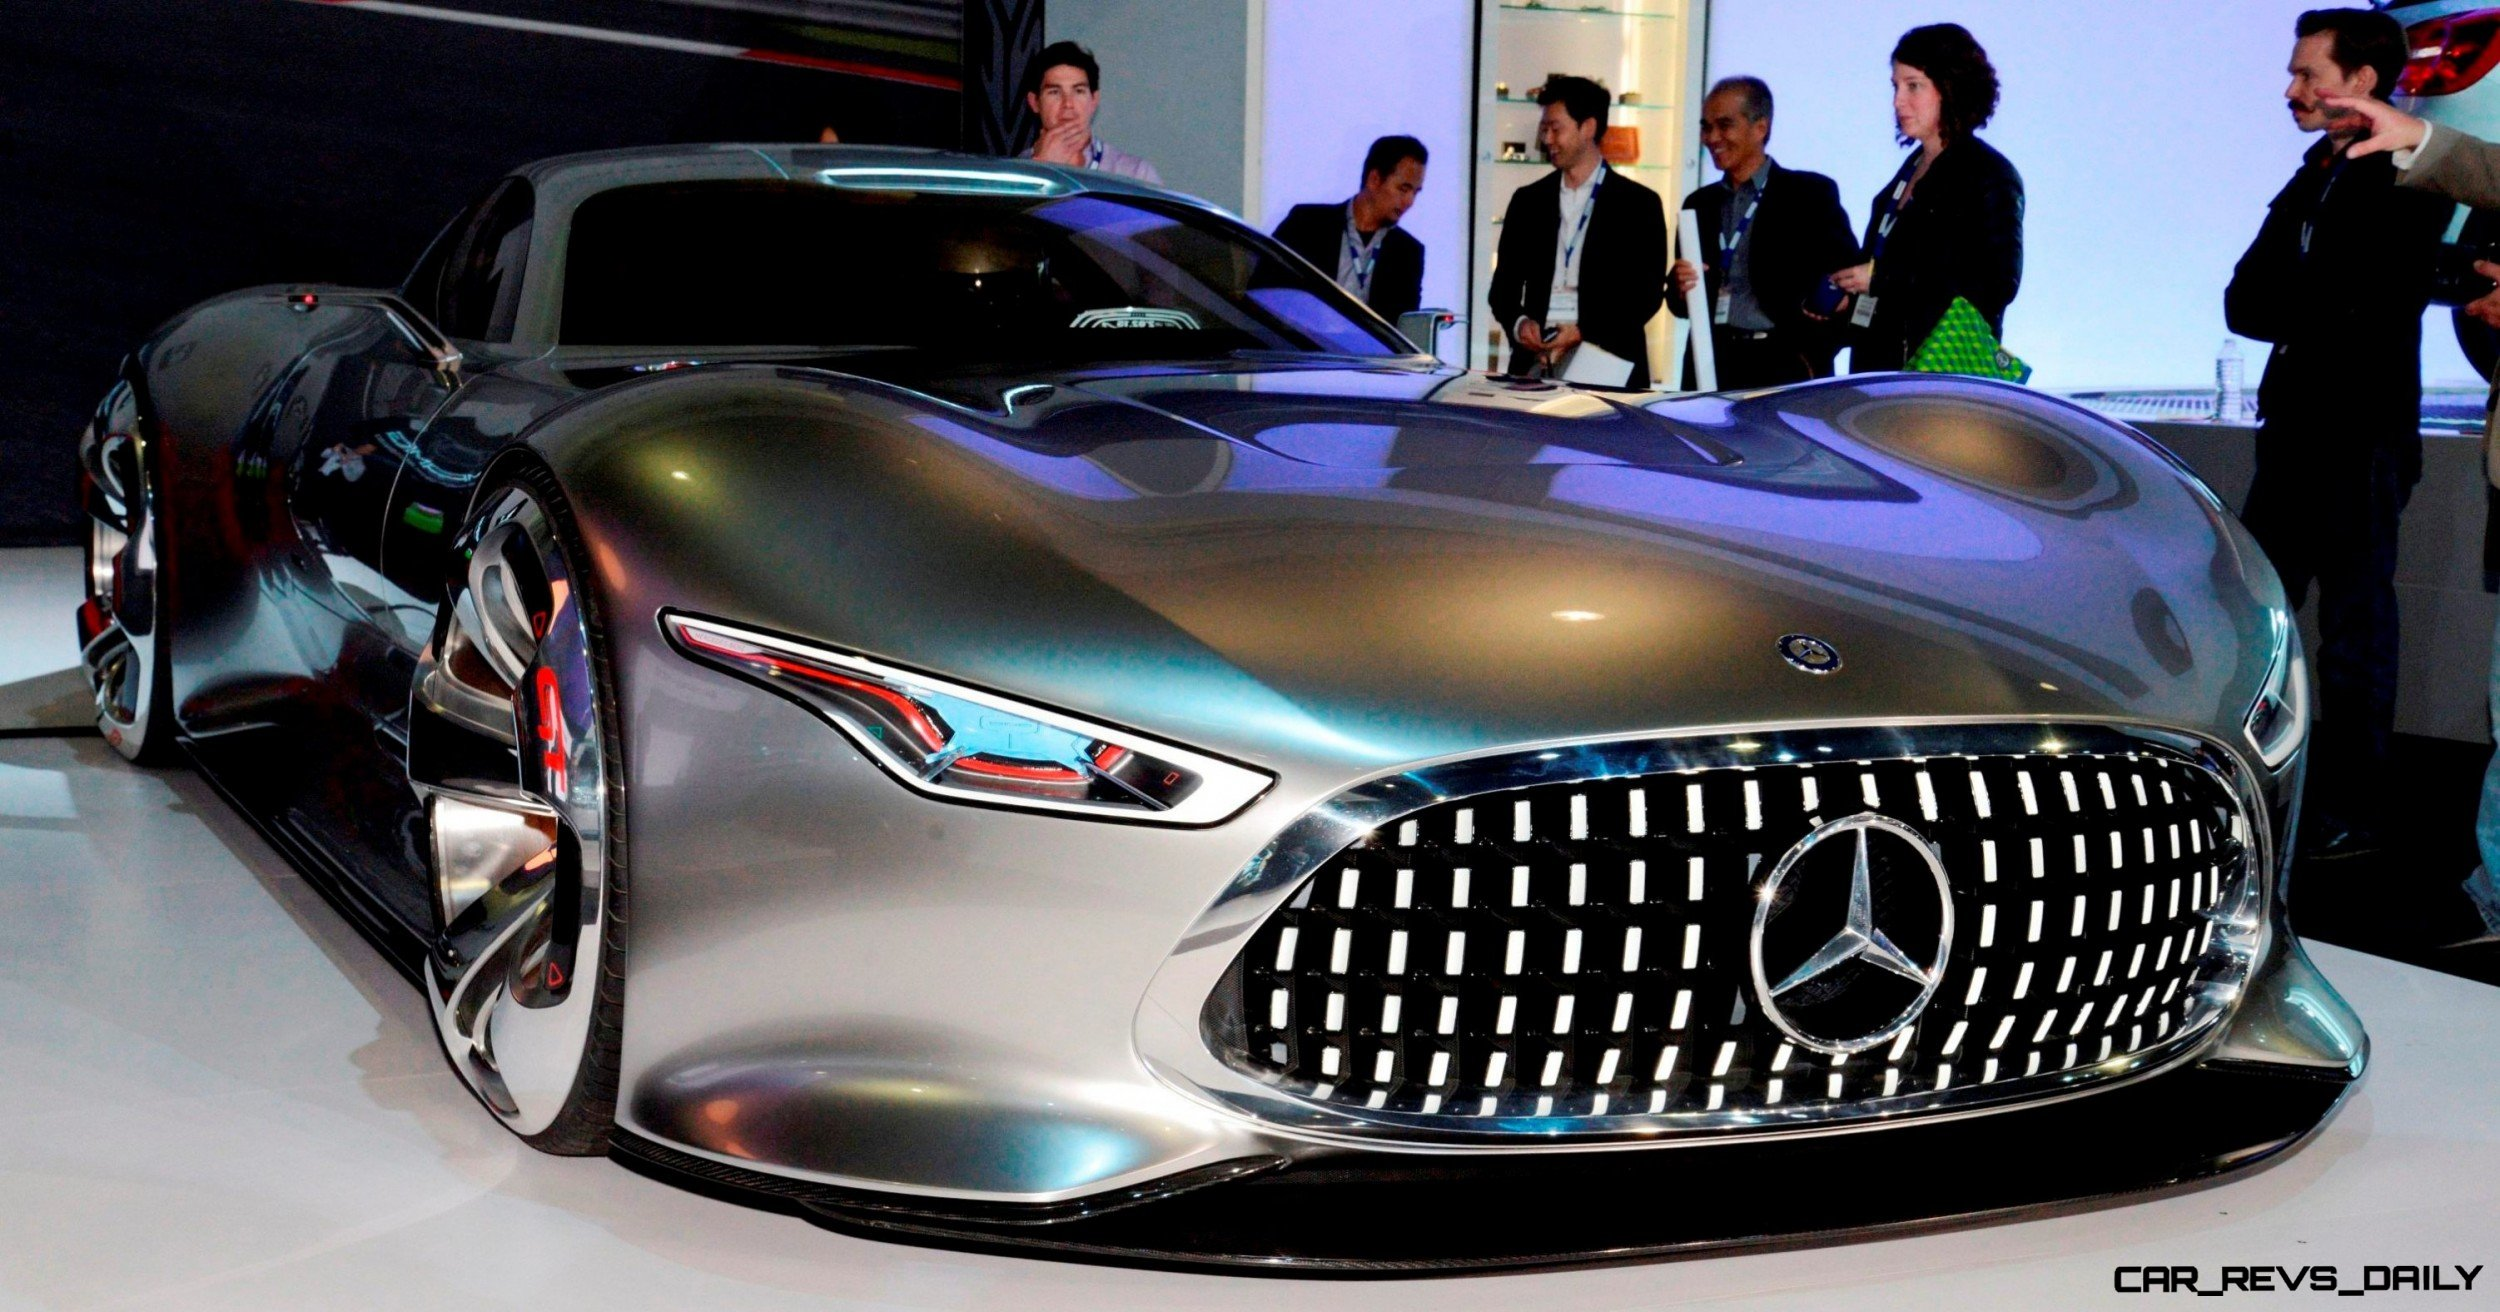 Amg Miami Boat Shows Long Dongs Mercedes Benz Extenzzzes Vision